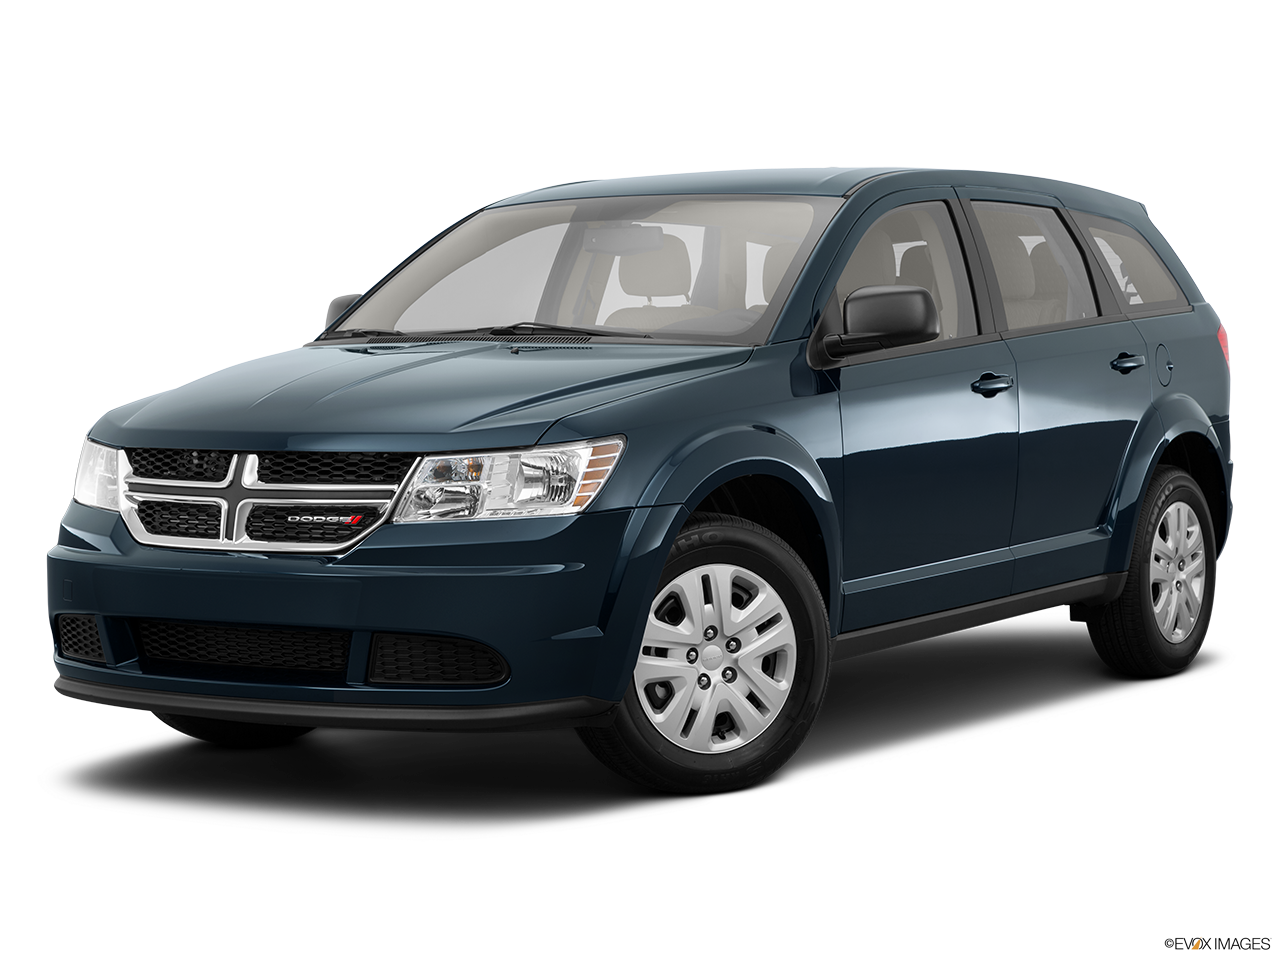 Test Drive A 2015 Dodge Journey at Huntington Beach Chrysler Dodge Jeep Ram in Huntington Beach